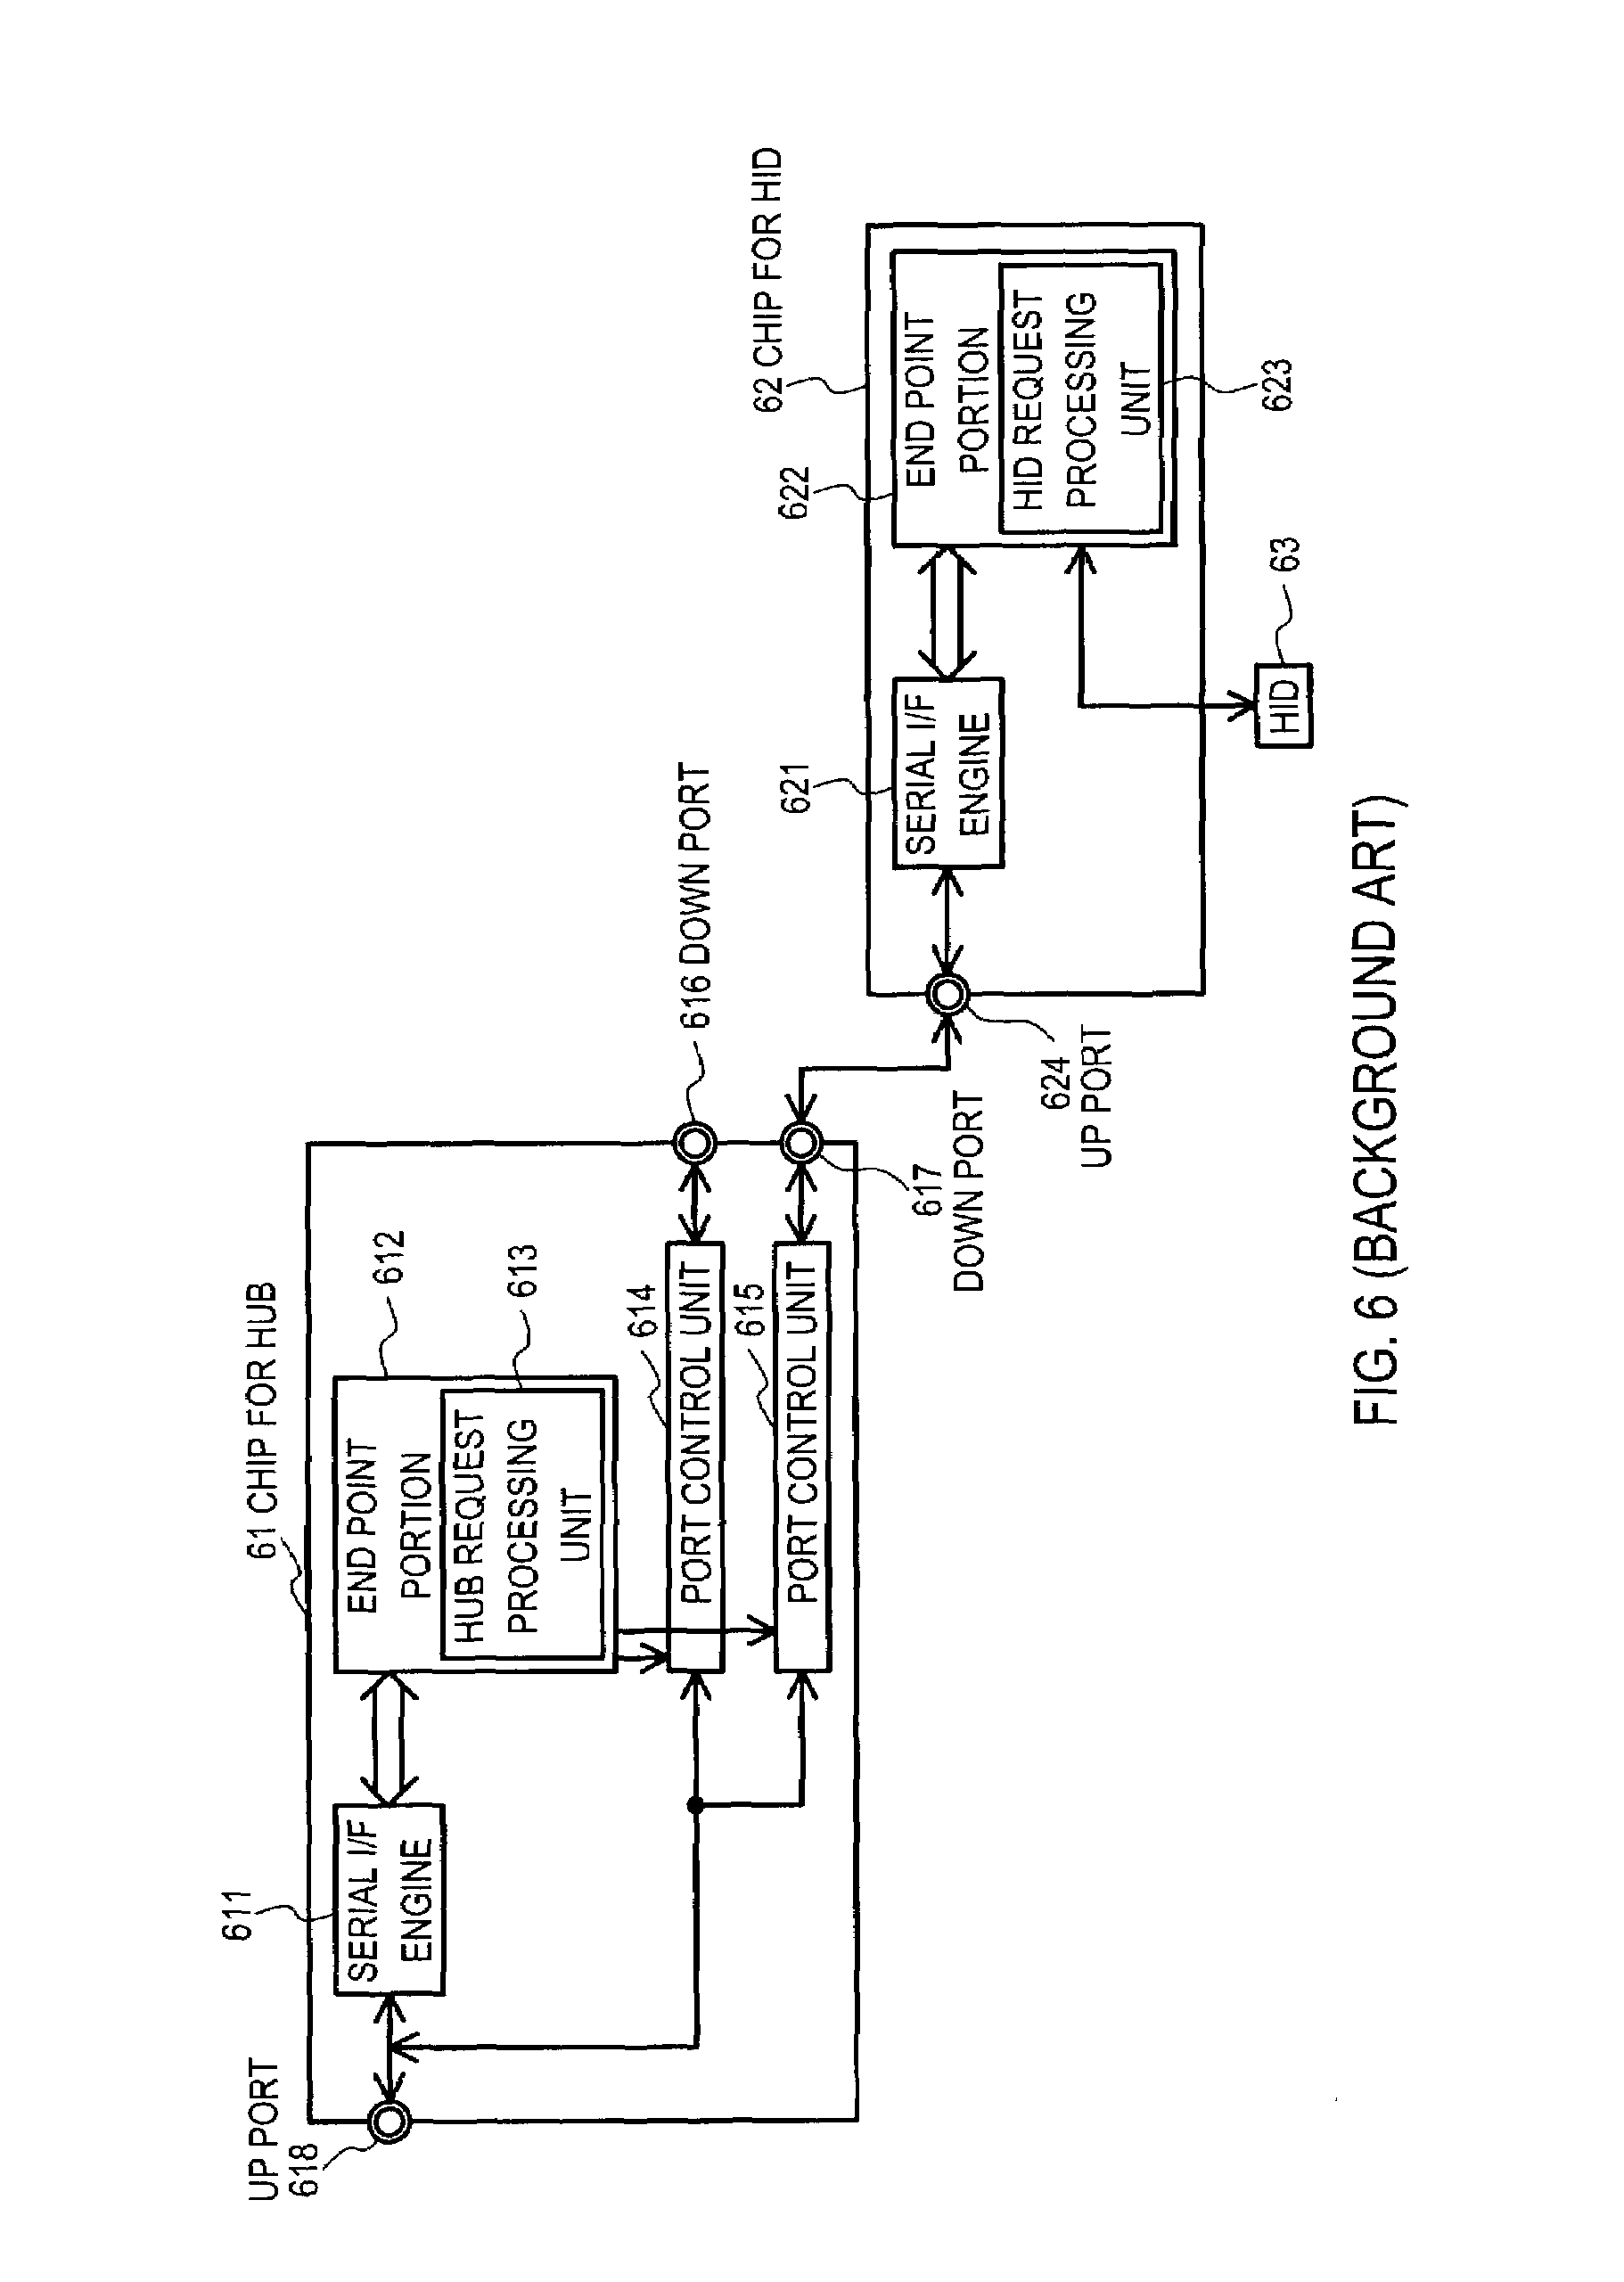 usb-hub device and its control method